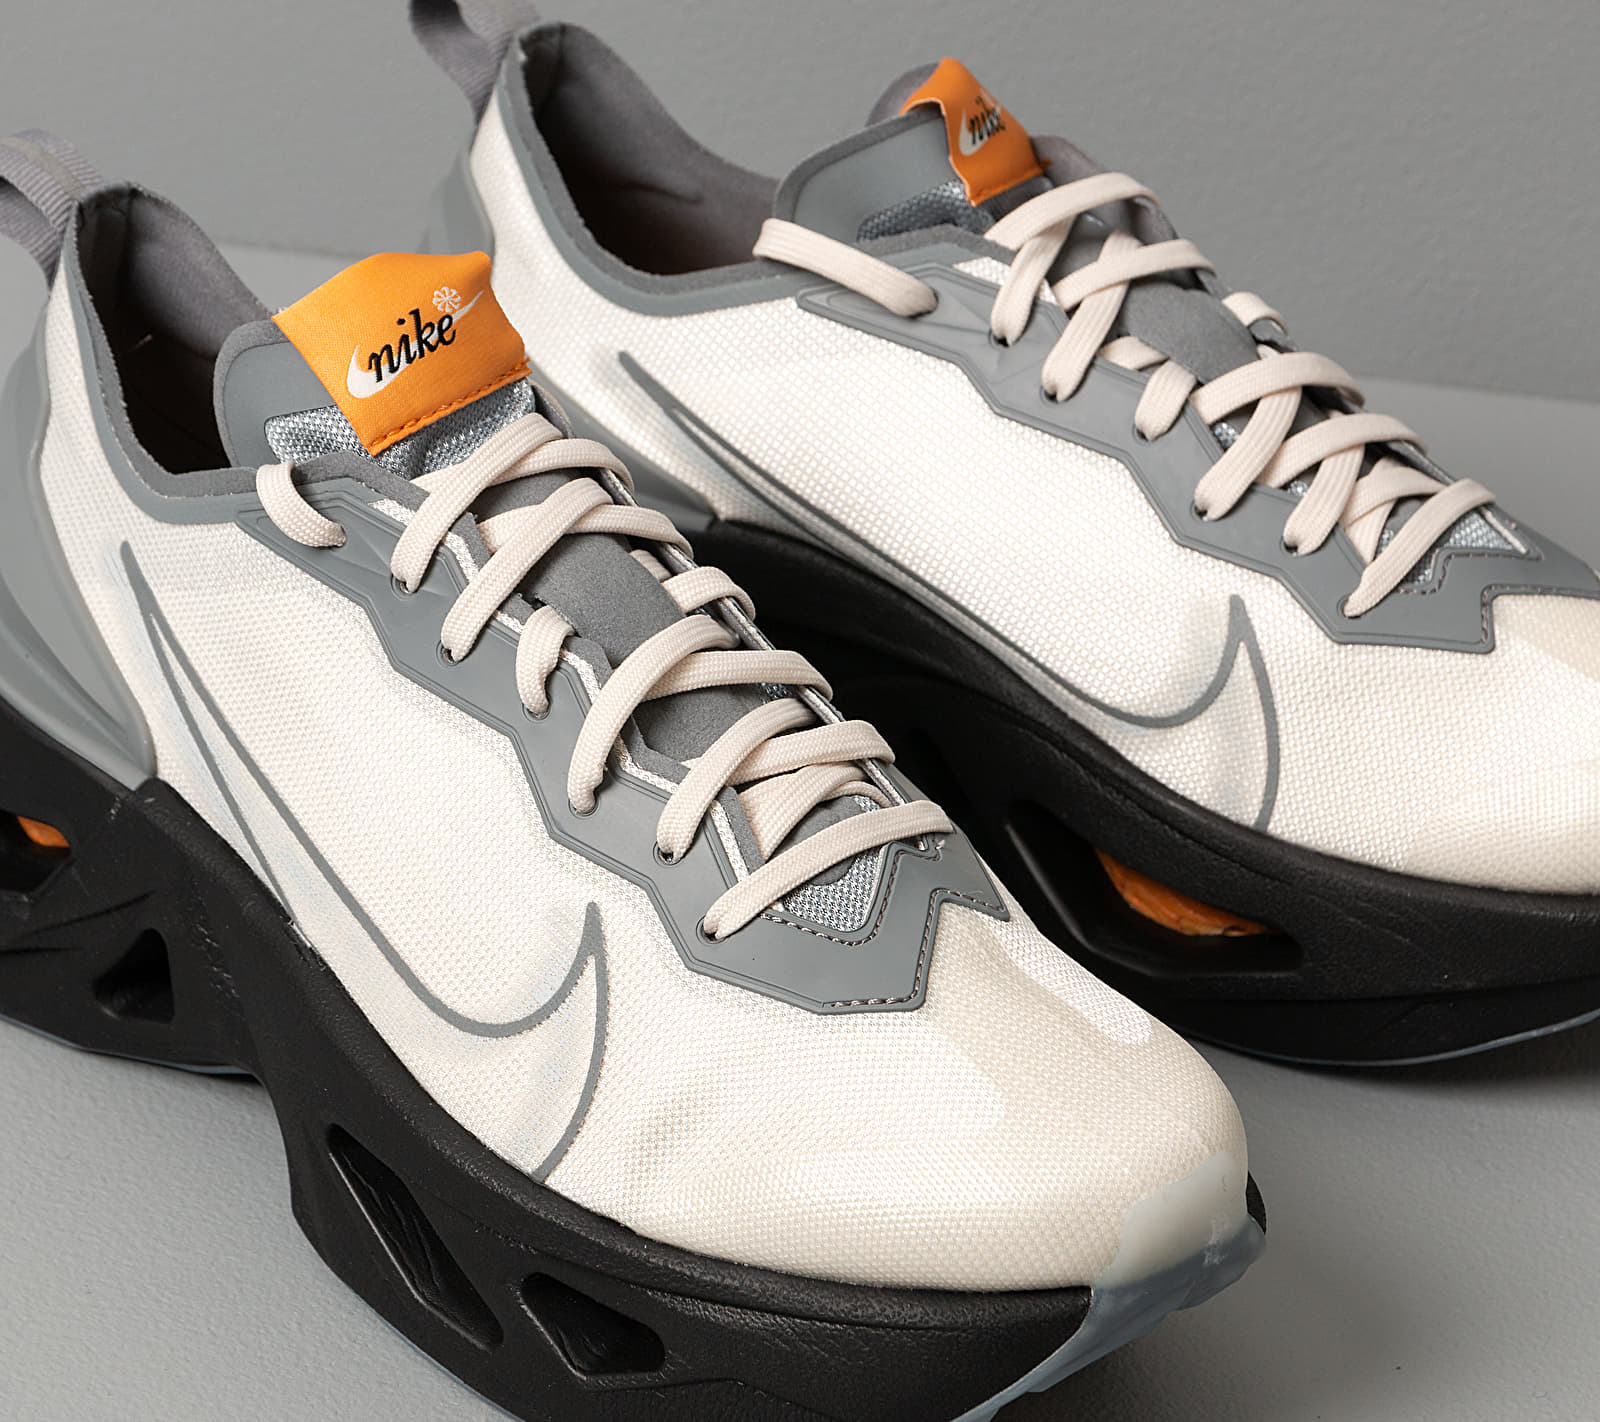 Nike W Zoom X Vista Grind Pale Ivory/ Pale Ivory-Cool Grey-Black, Gray